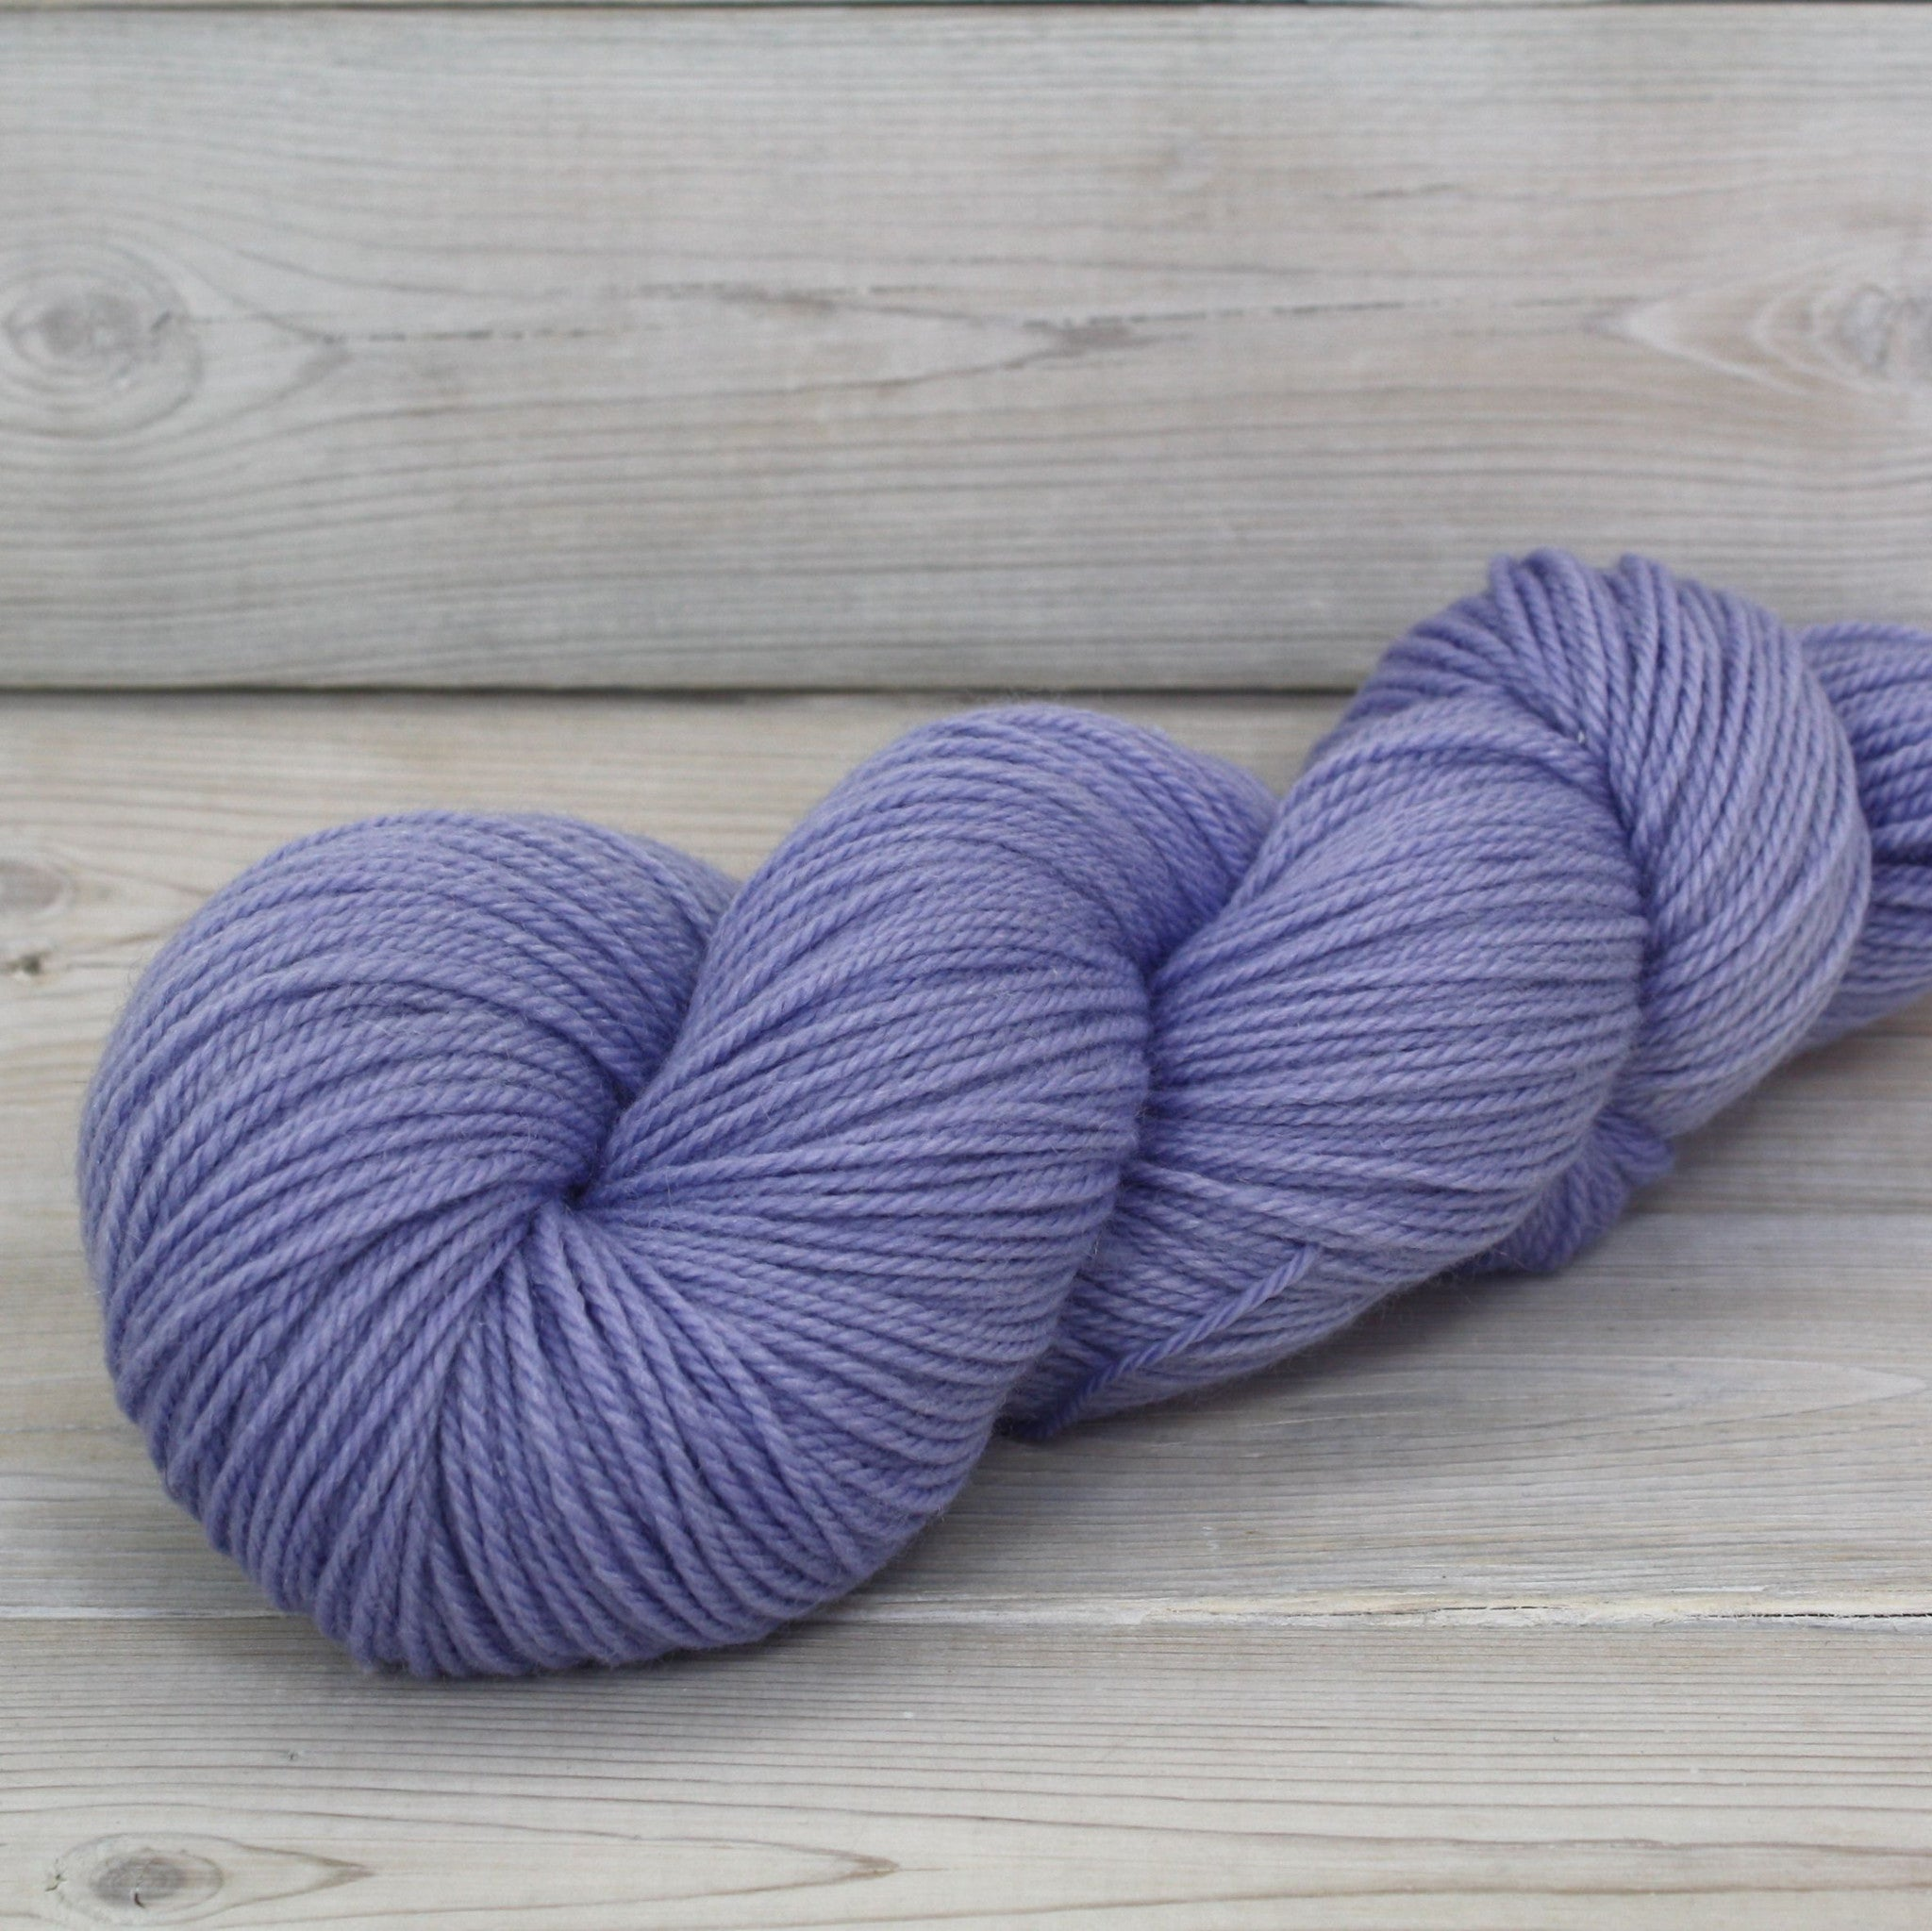 Zeta Yarn | Colorway: Hydrangea